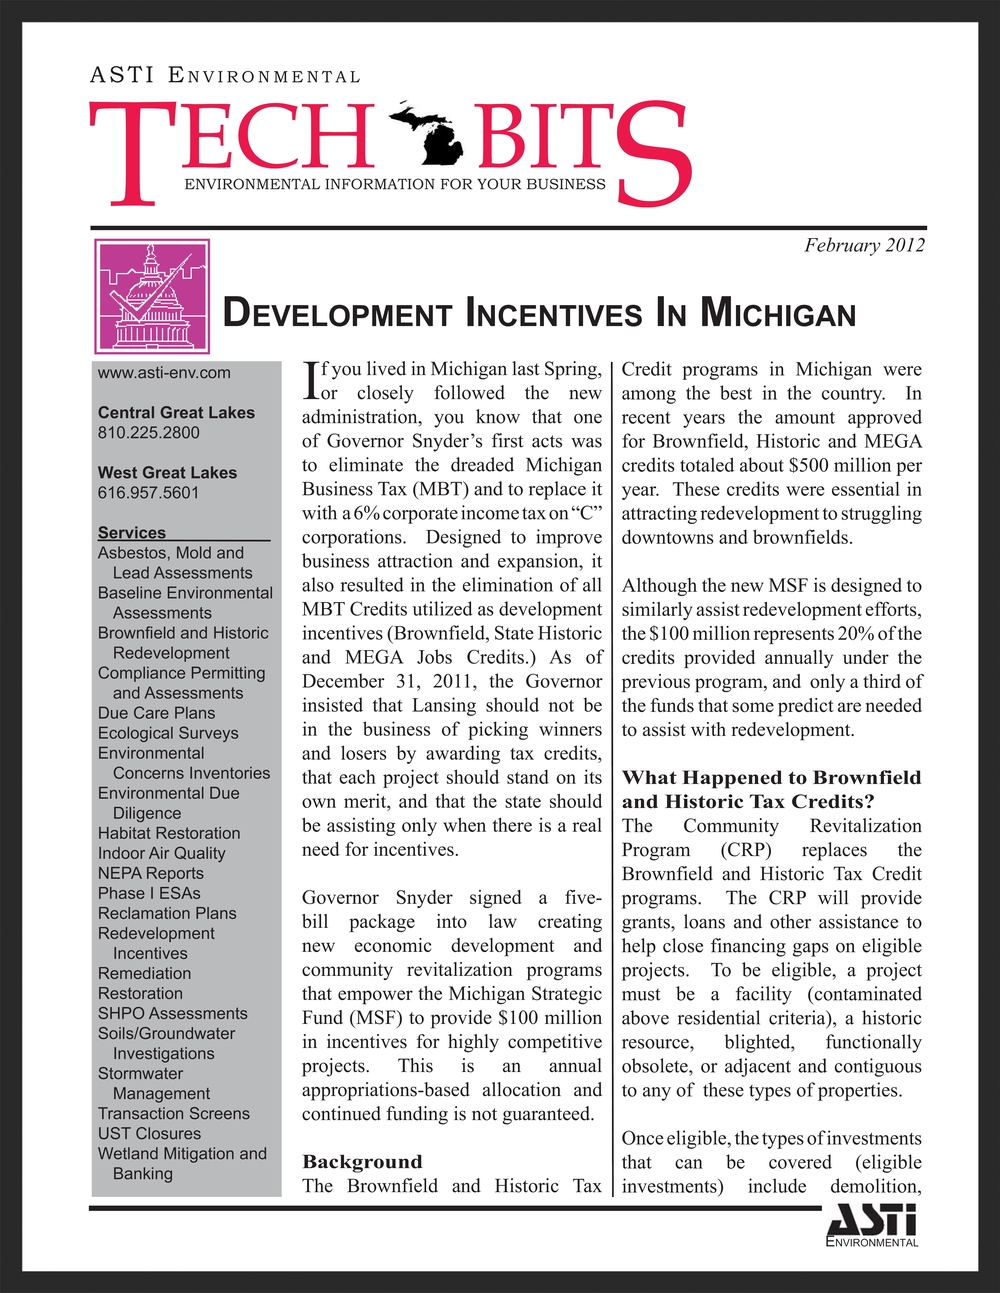 TECH BITS DEVELOPMENT INCENTIVES IN MICHIGAN